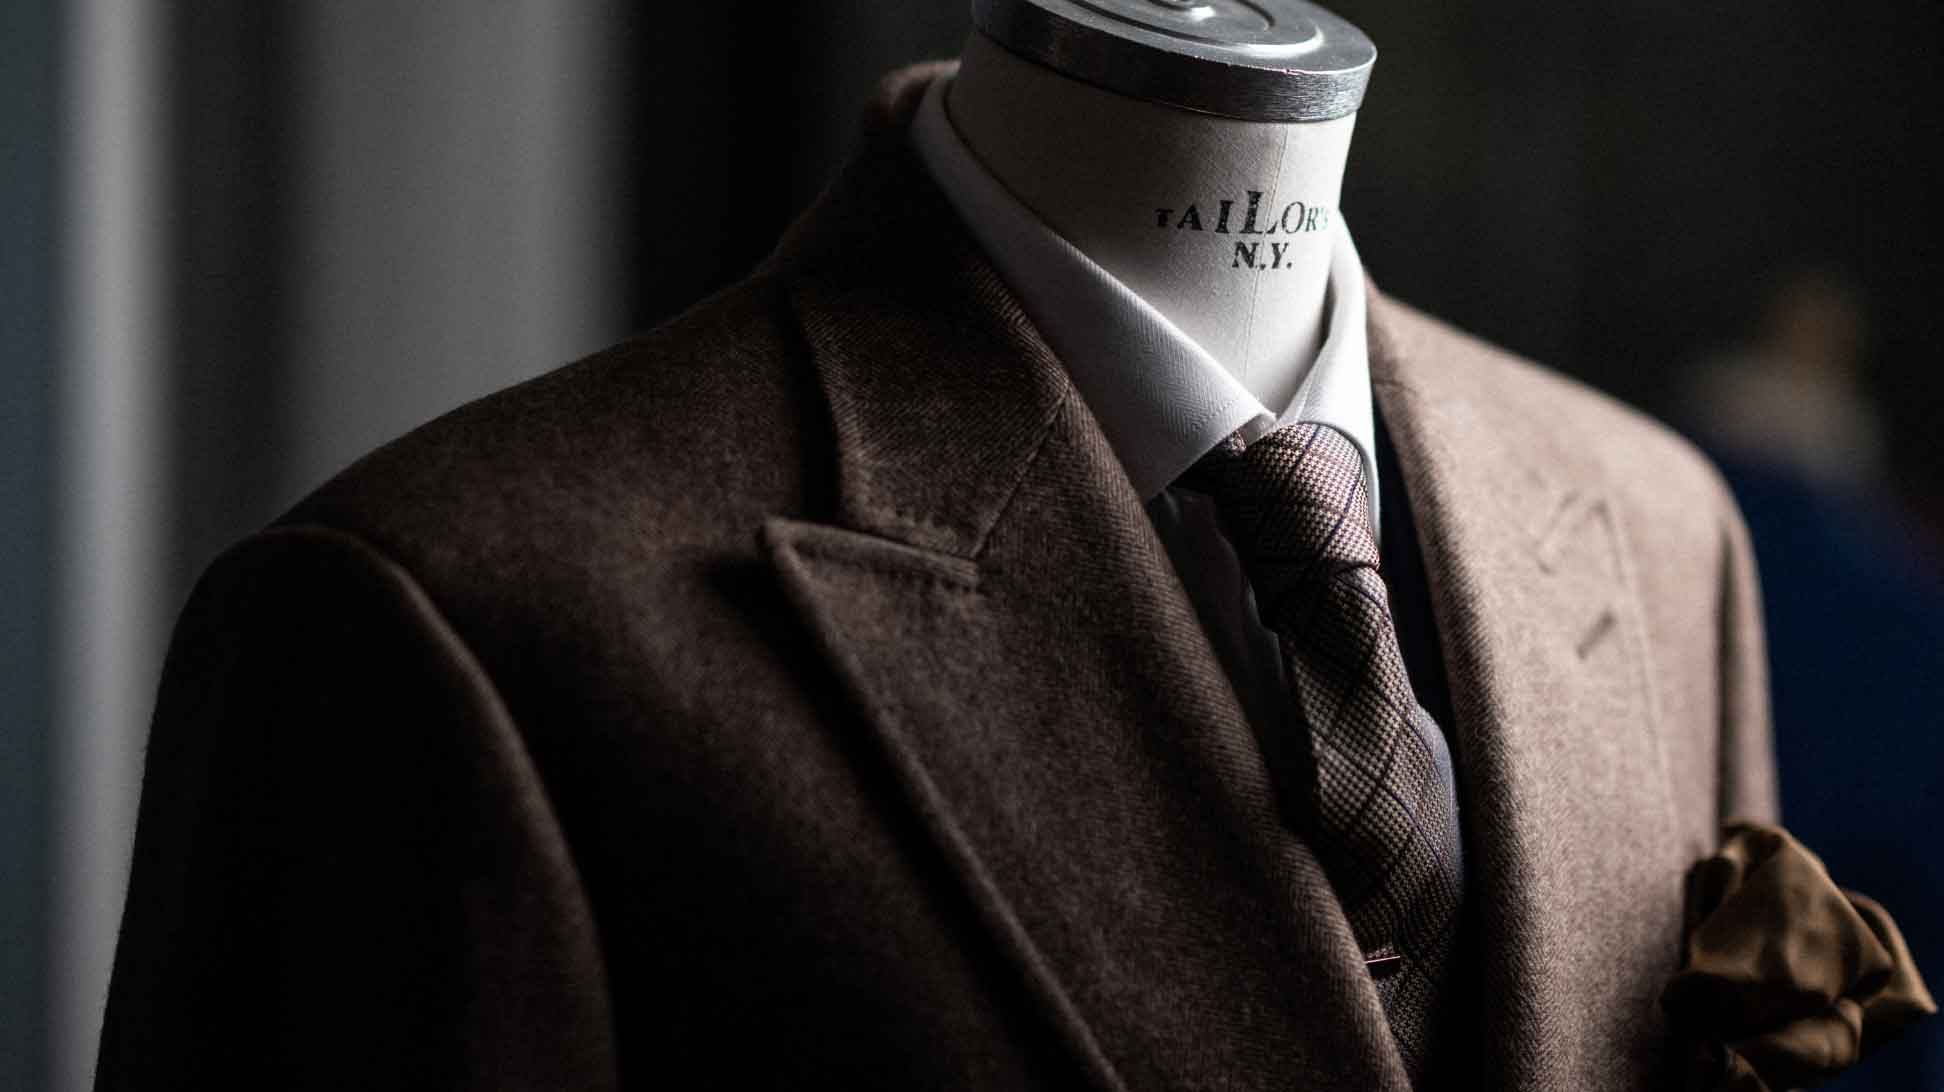 Tailored shirts tailor made in Exeter